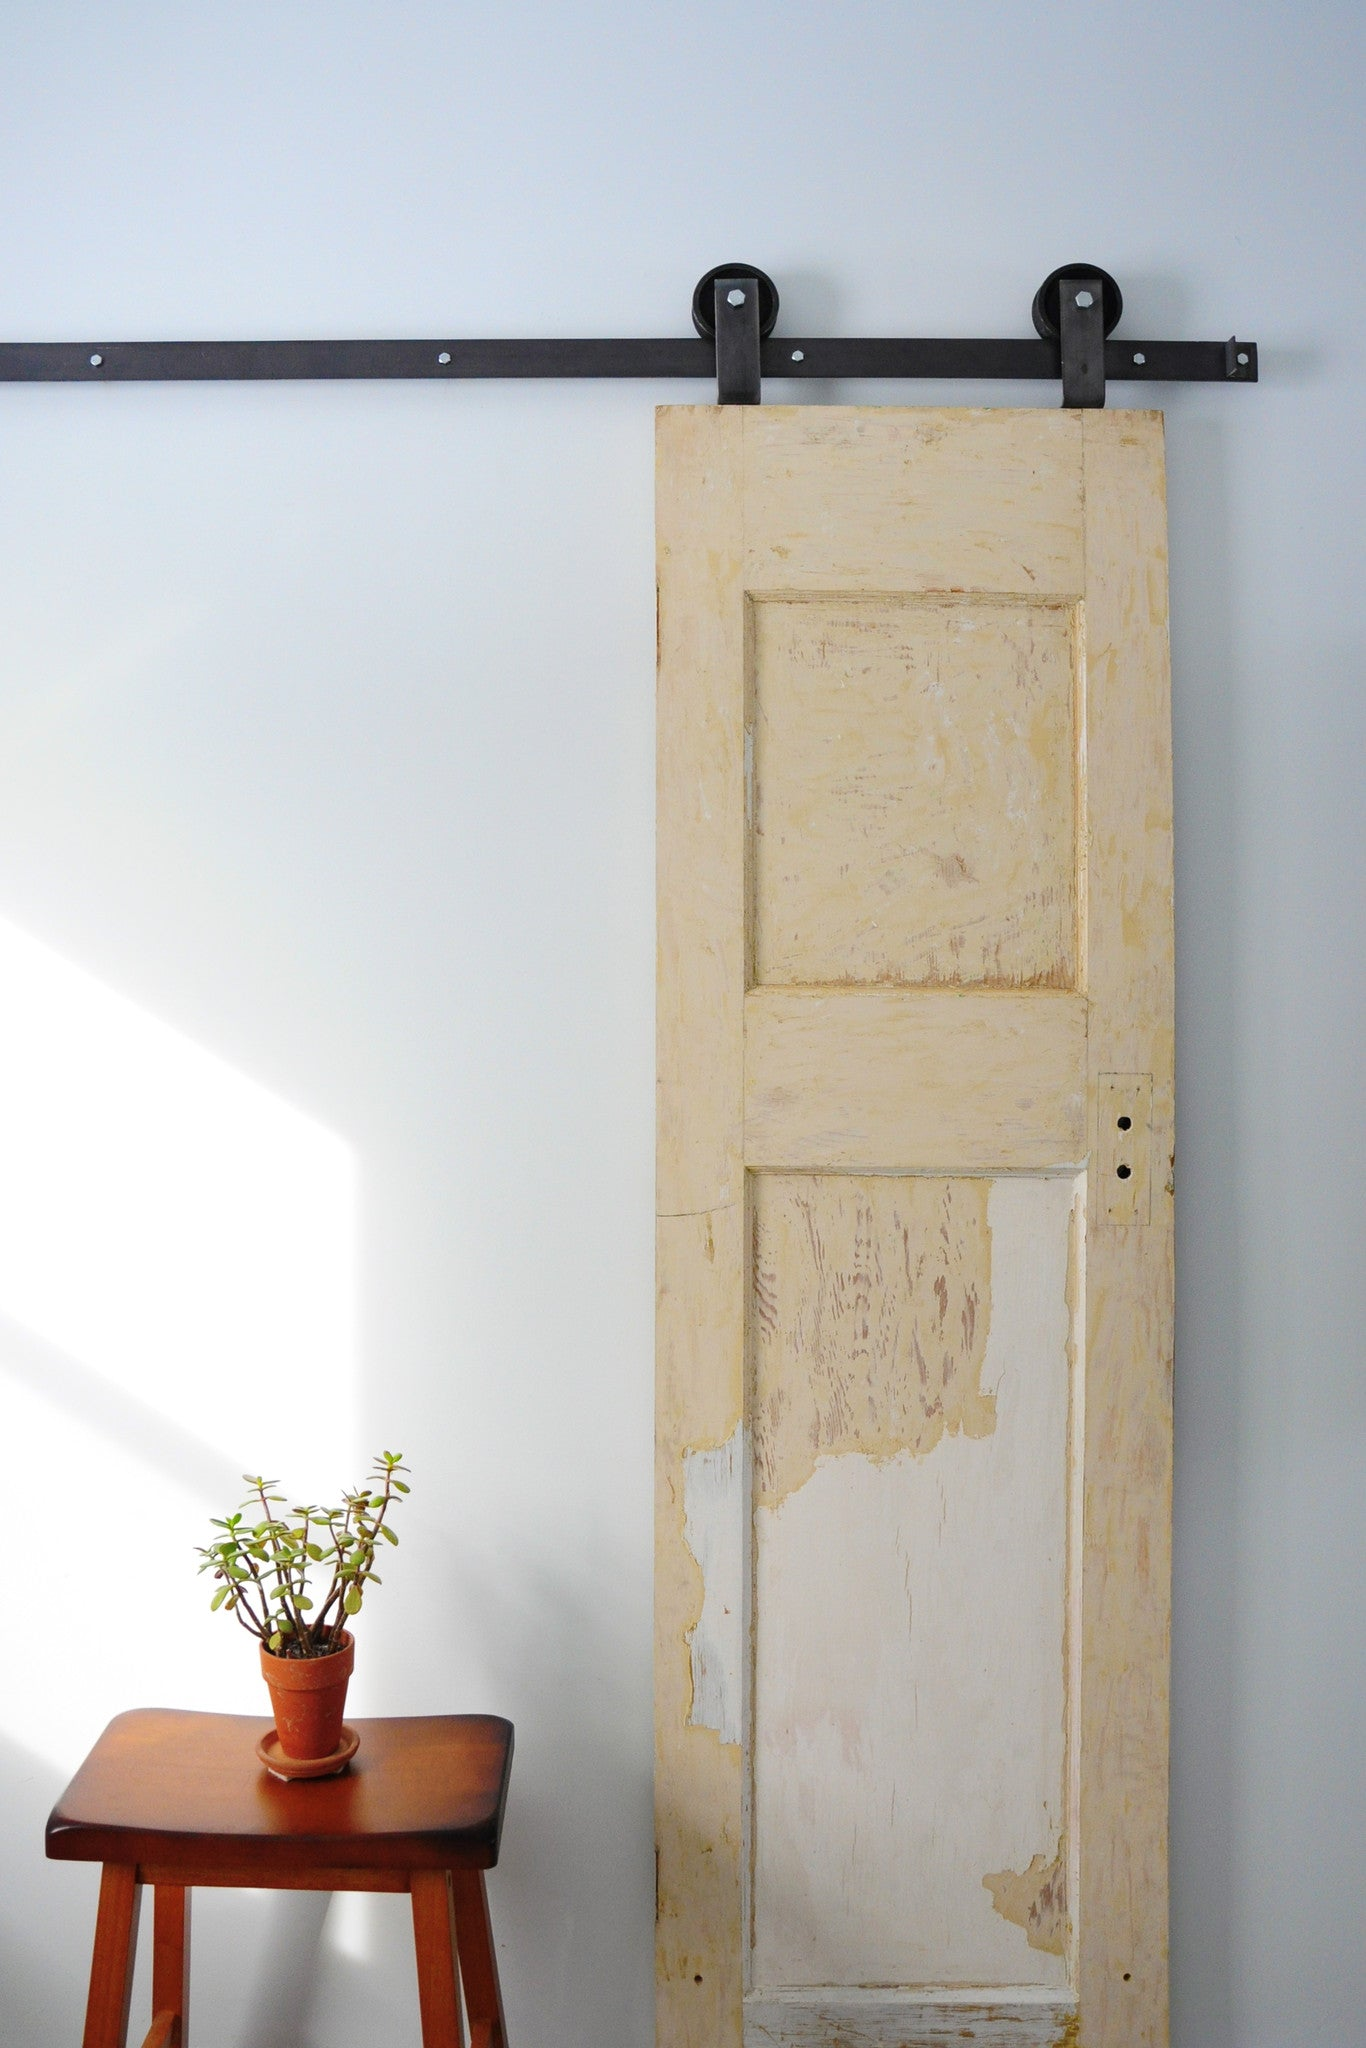 Top Mount barn door